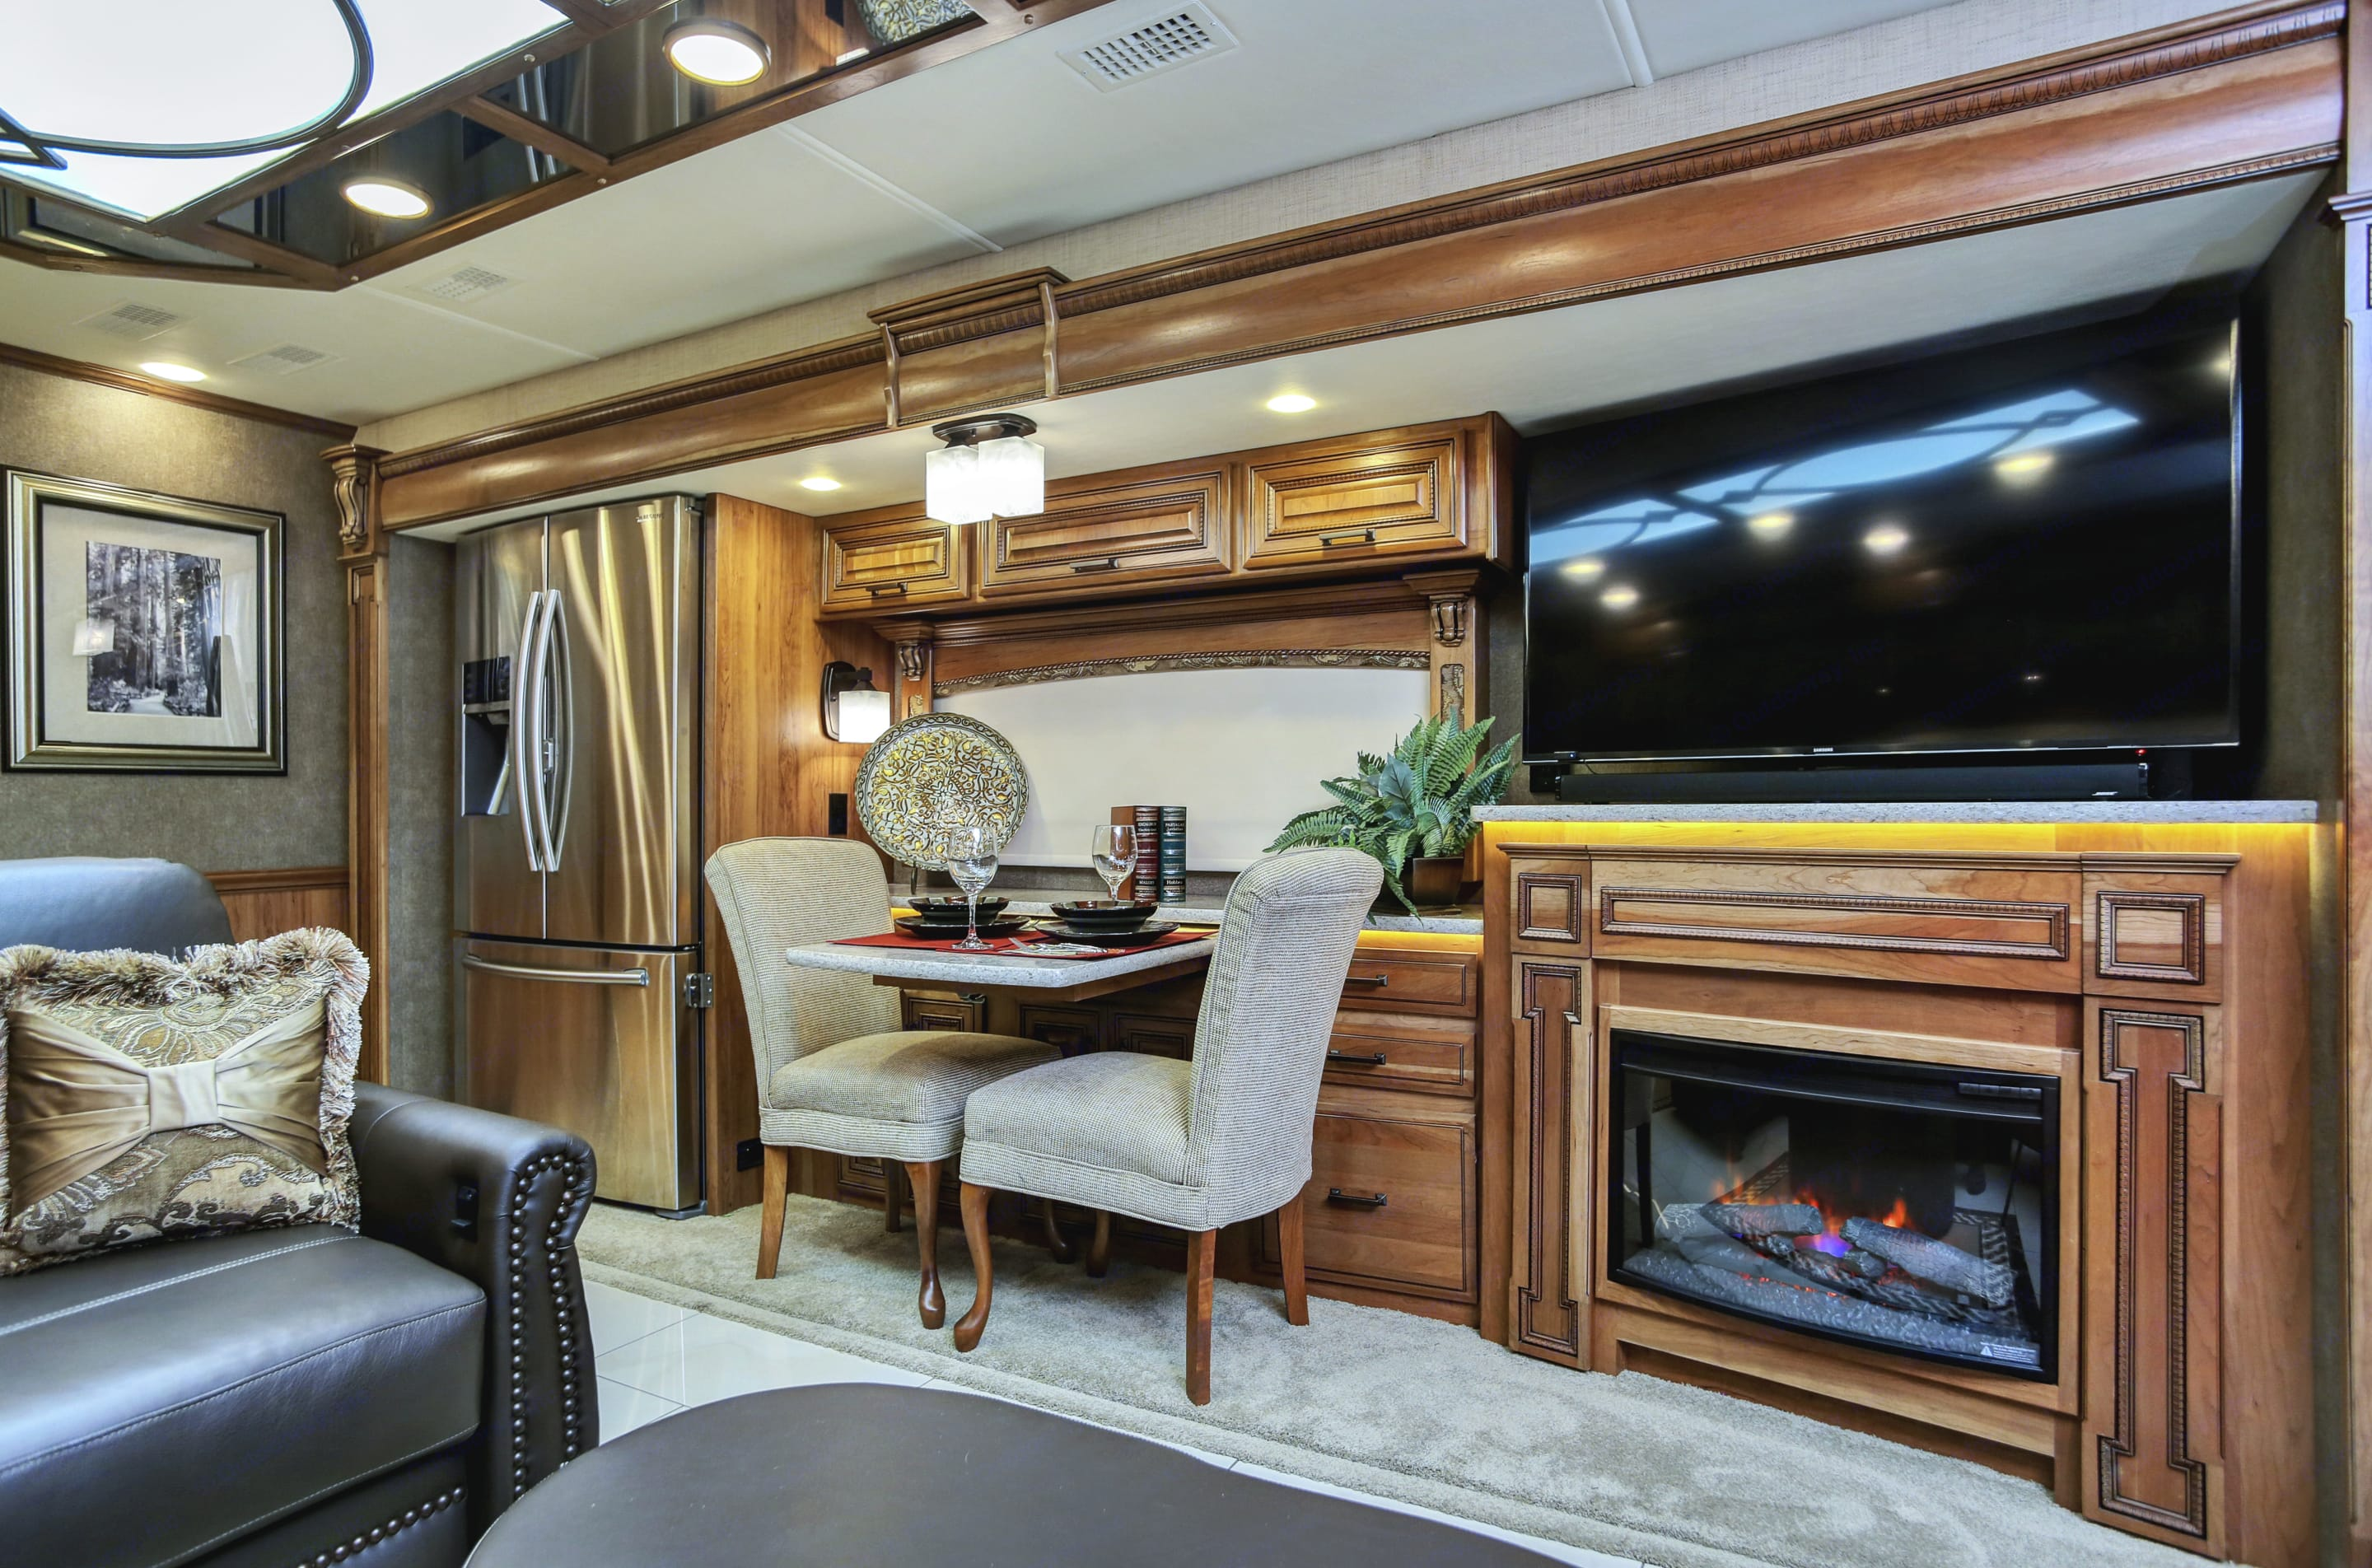 dining for two or four, extra chairs under king masterbed.  Bose sound bar, fireplace with heat. Heated floors, Aqua Hot instant heat, electric or diesel heater for long hot showers and toasty floors. Entegra Coach Cornerstone 2016